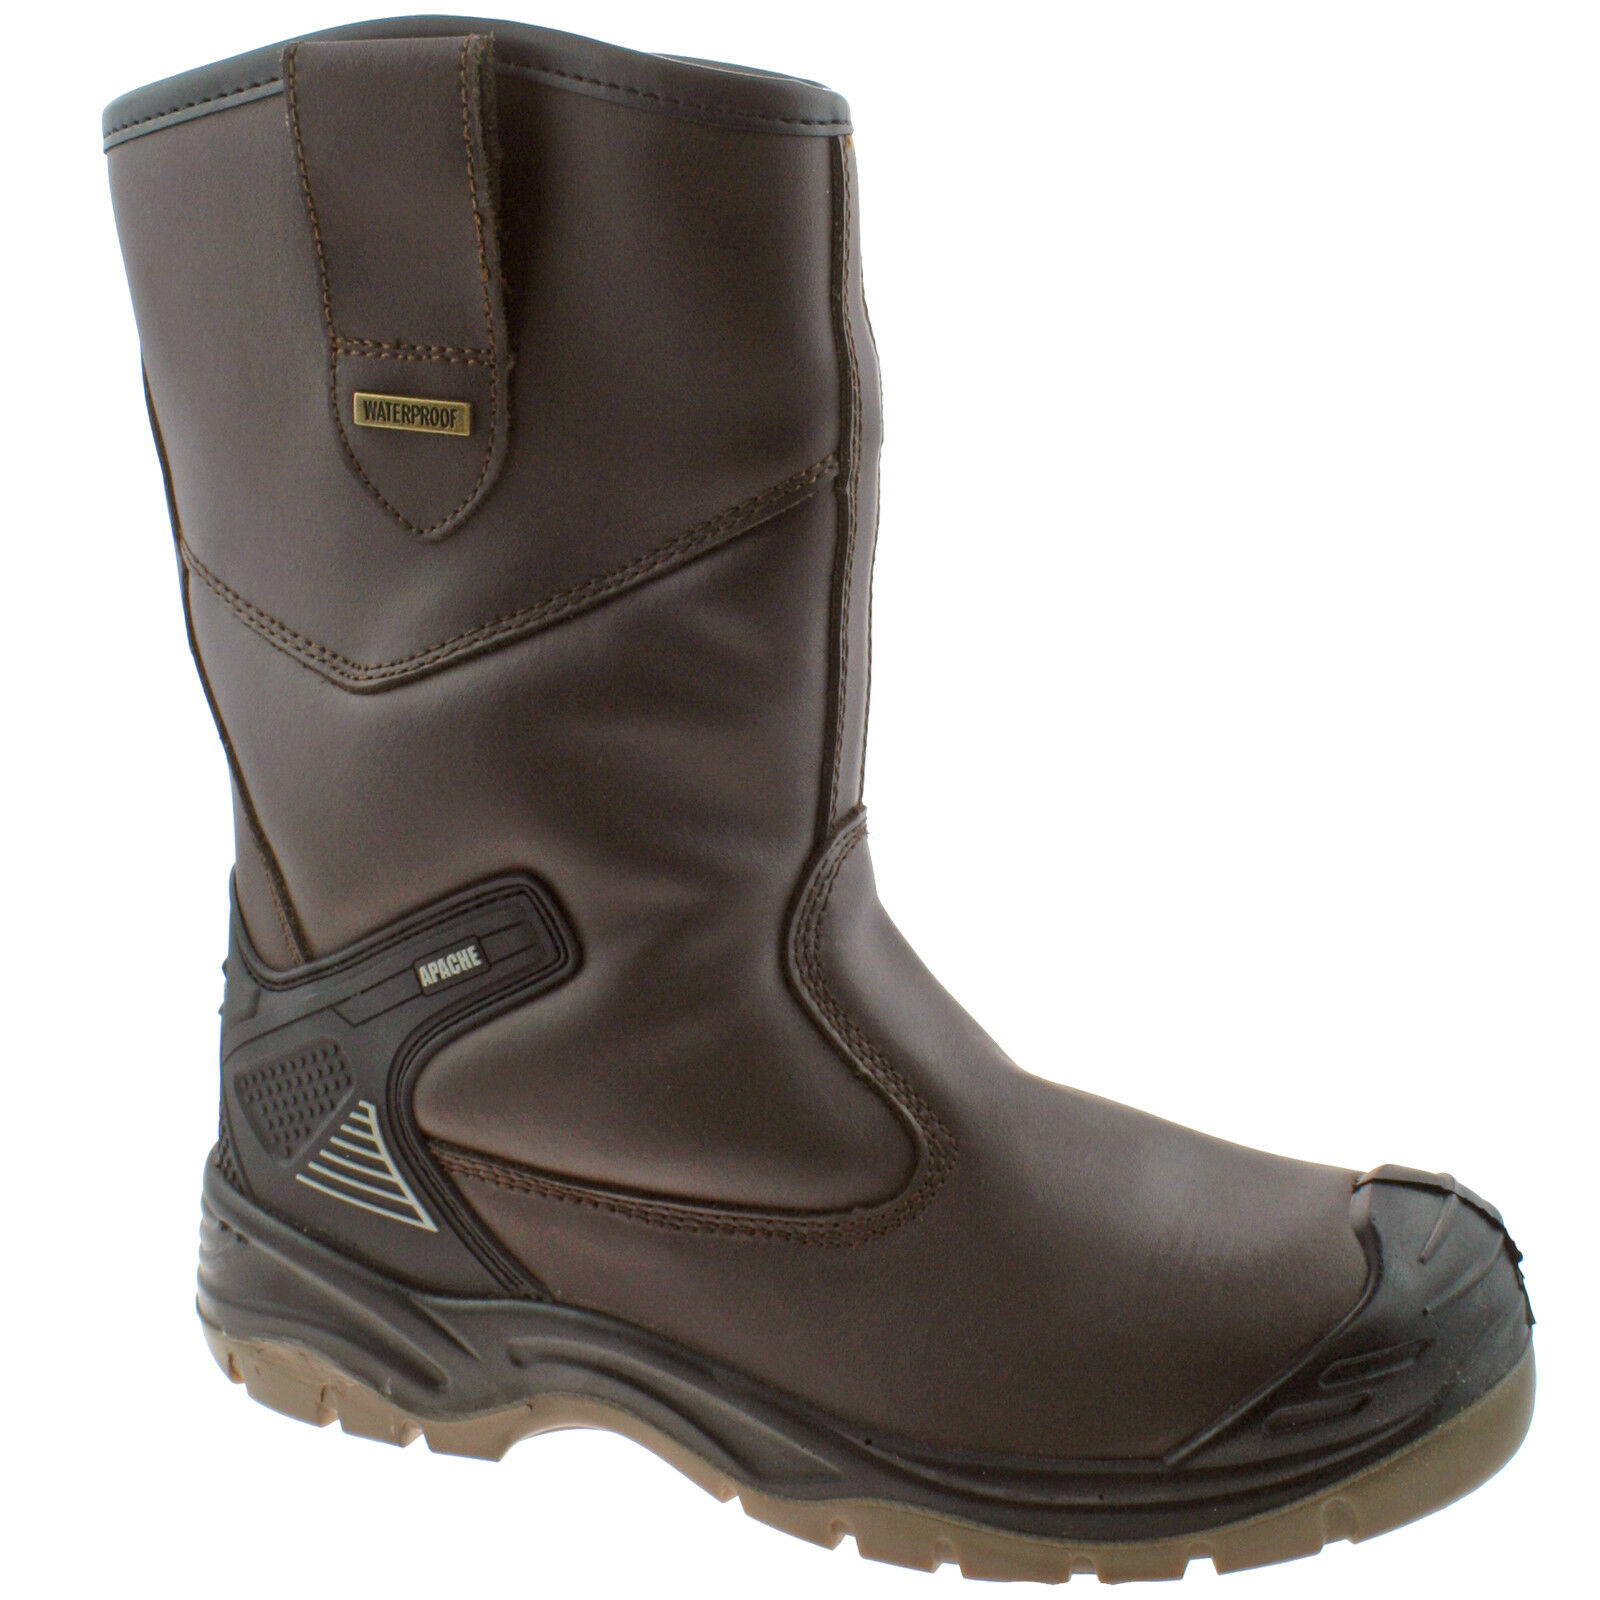 MENS APACHE AP305 braun LEATHER WATERPROOF SAFETY STEEL TOE CAP RIGGER Stiefel